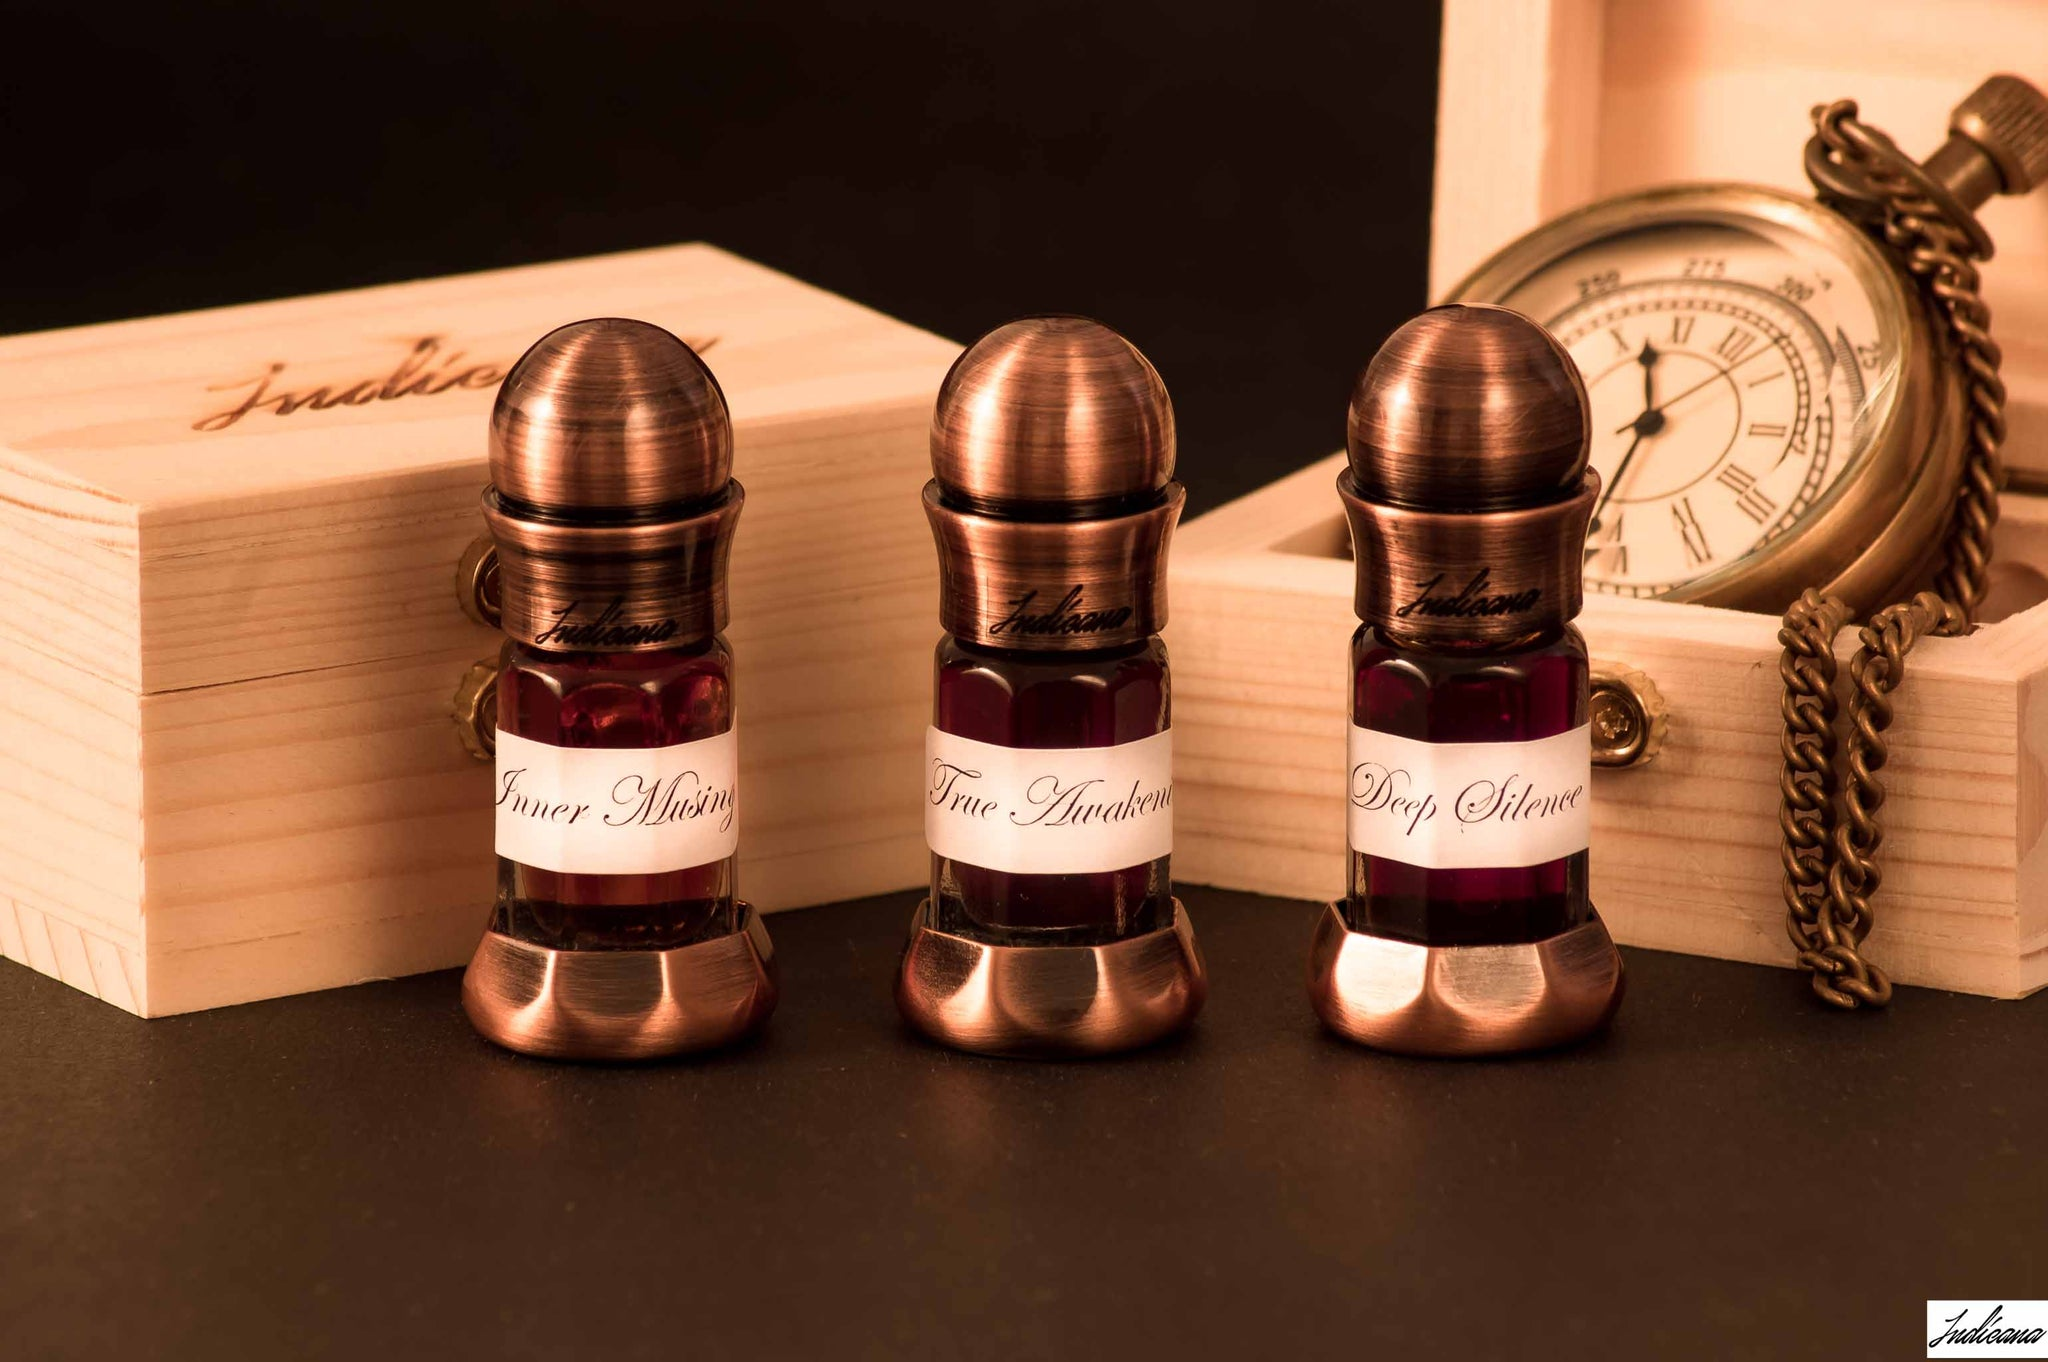 Pure Indian Agarwood Oils by Indicana Oud - Transcendental Oud Series from Assam India